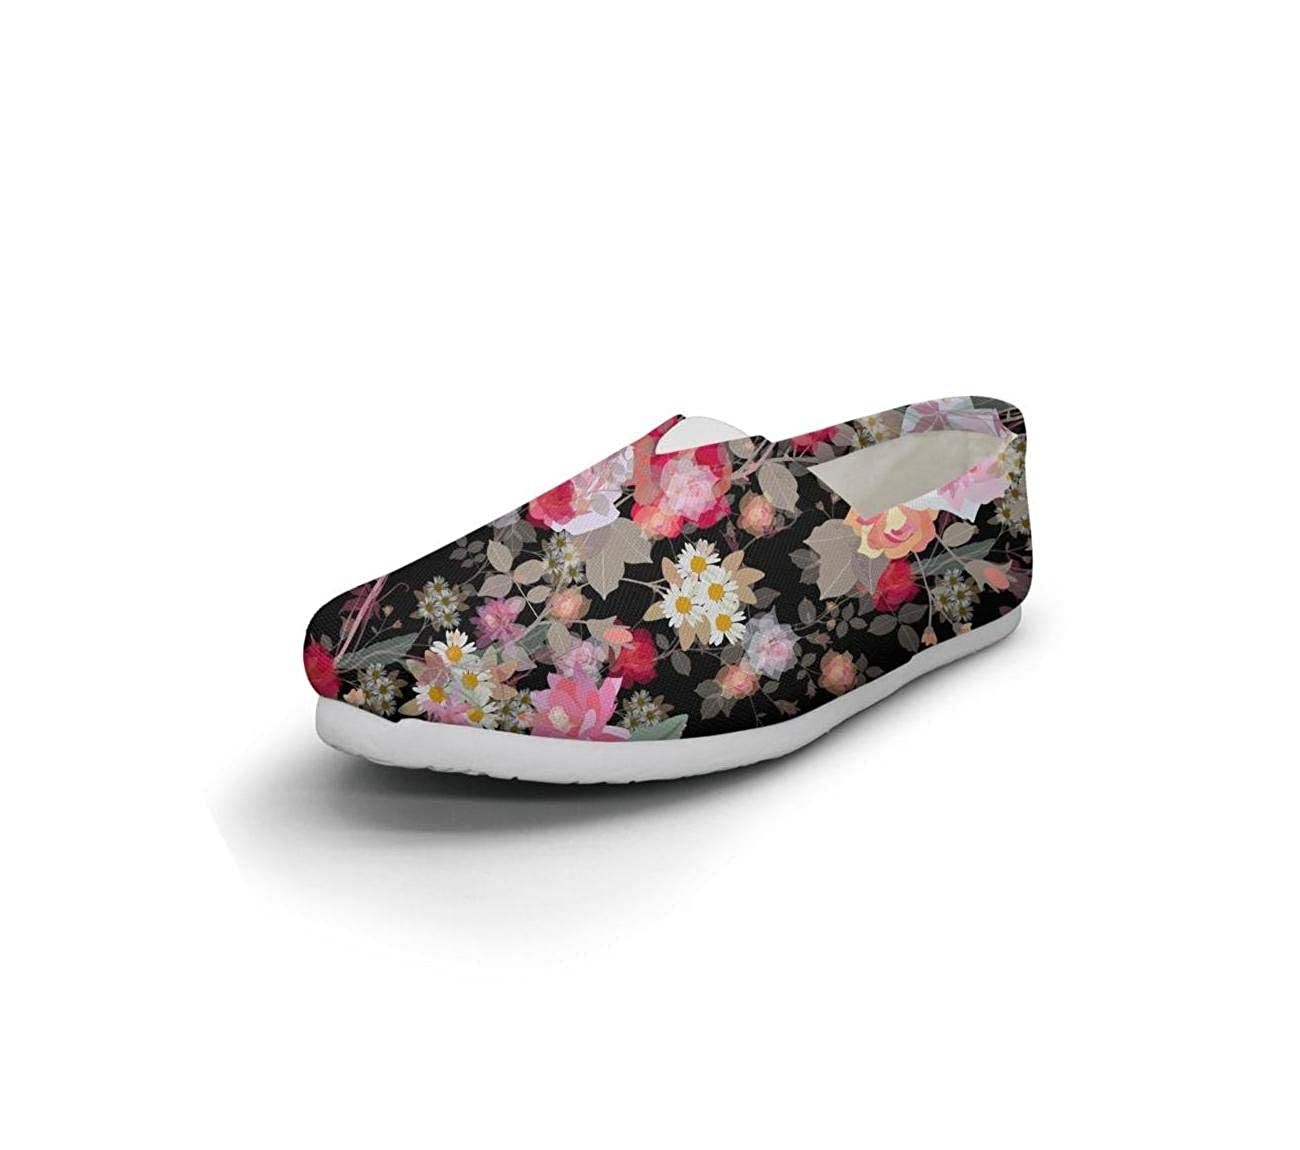 Floral Ornament Exotic Flowers and Leaves Checkerboard Daughter Lightweight Casual Canvas Low-top Sneakers Traveling Shoes